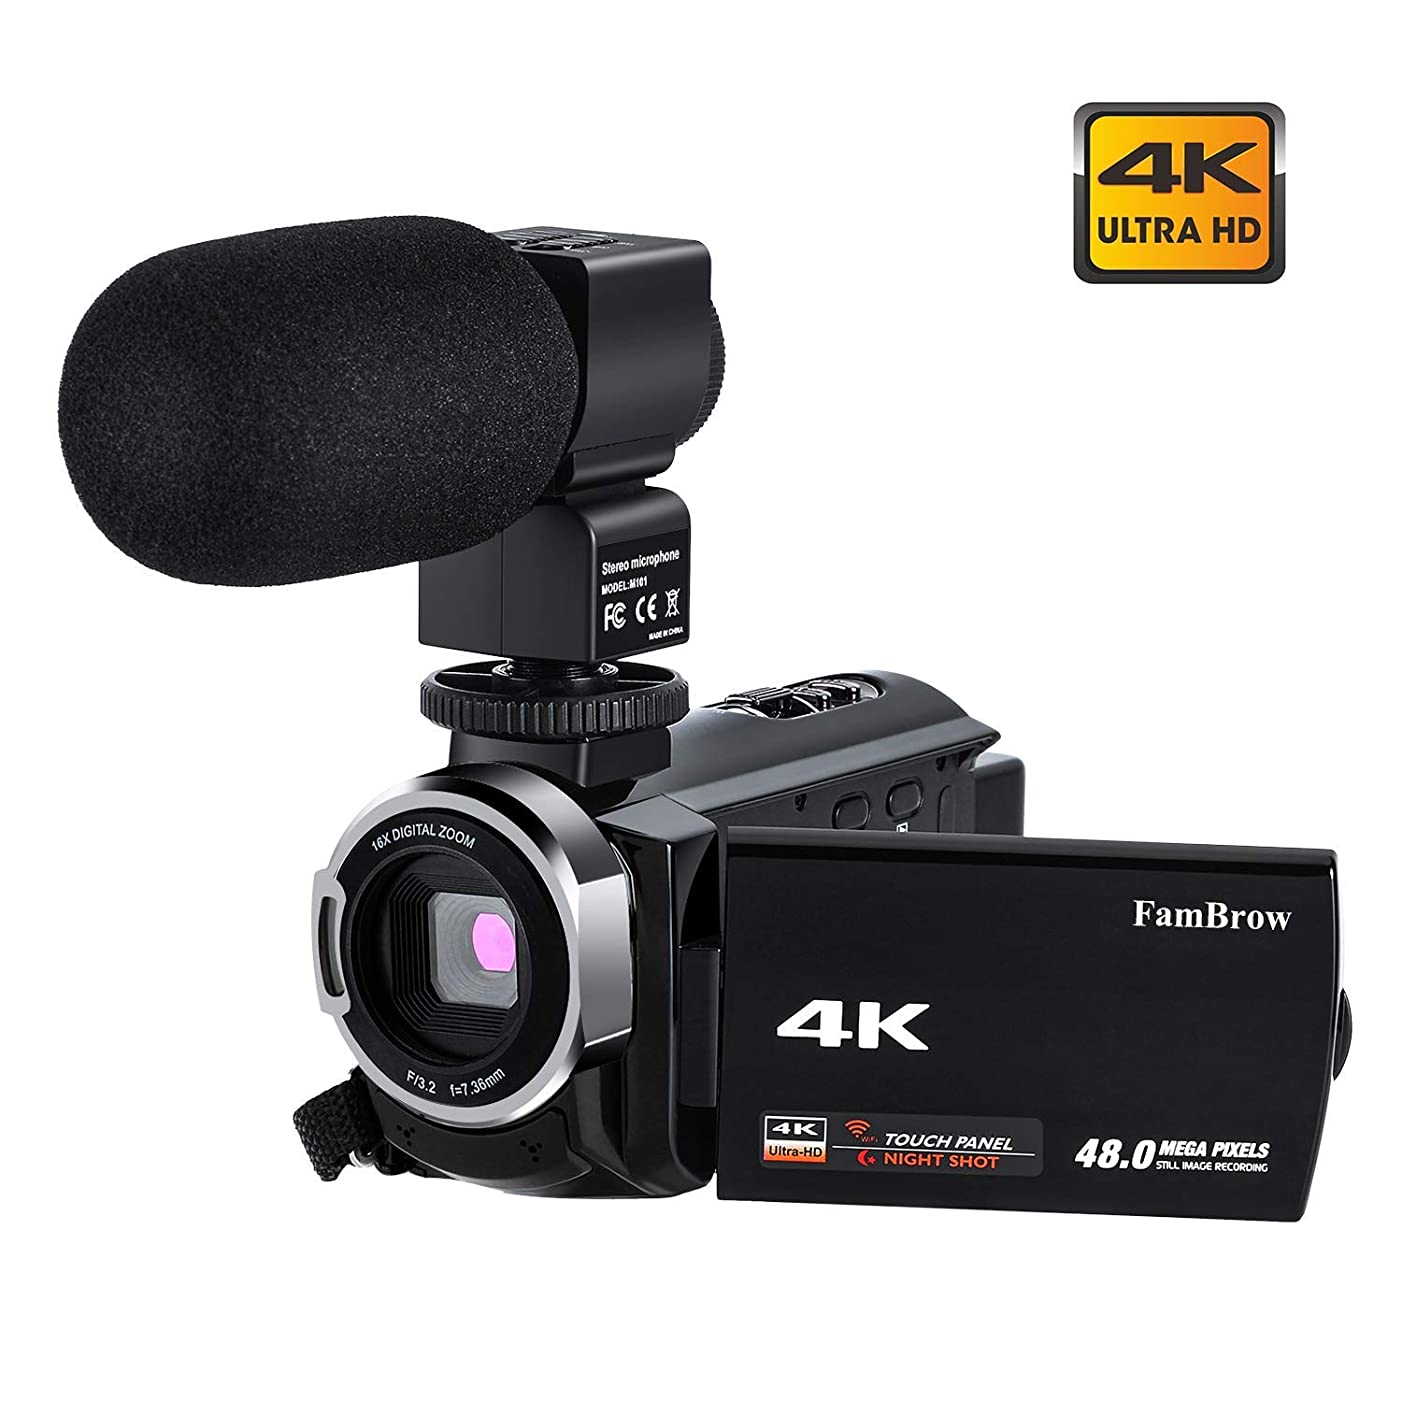 4K Camcorder Video Camera with Microphone, FamBrow Ultra HD 4K 48MP WiFi IR Night Vision 3.0 Inch 270 Degrees Rotatable Touch Screen 16X Digital Zoom Vlogging Camera Recorder for YouTube 2 Batteries